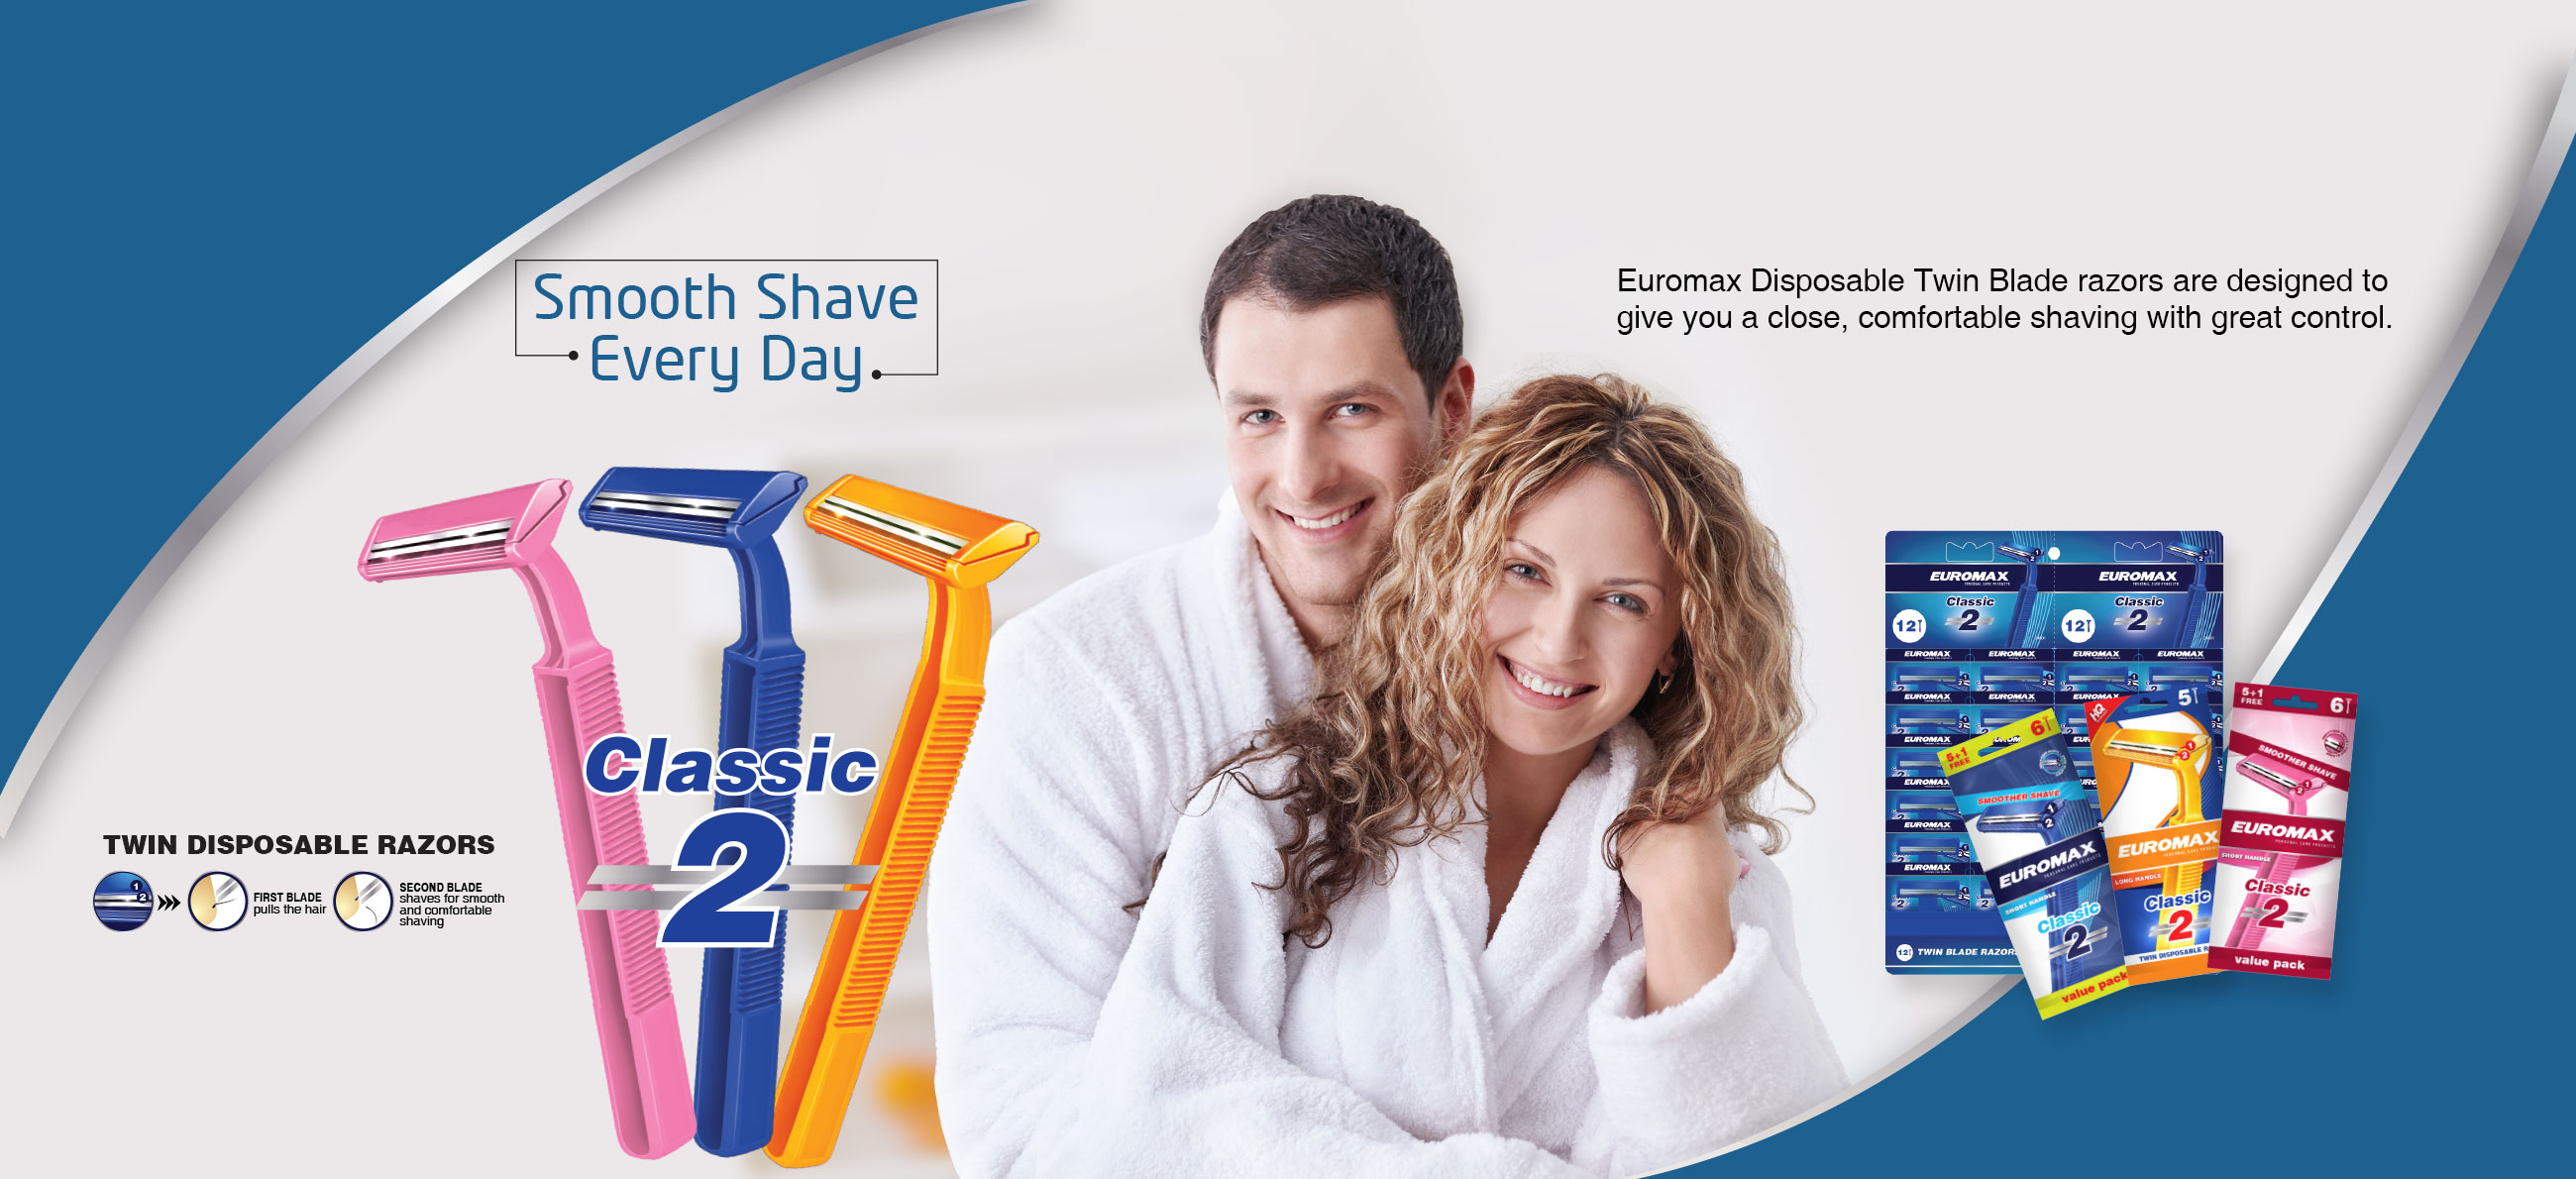 amazing shaving experience personal care blades disposable razors professional salon dubai uae